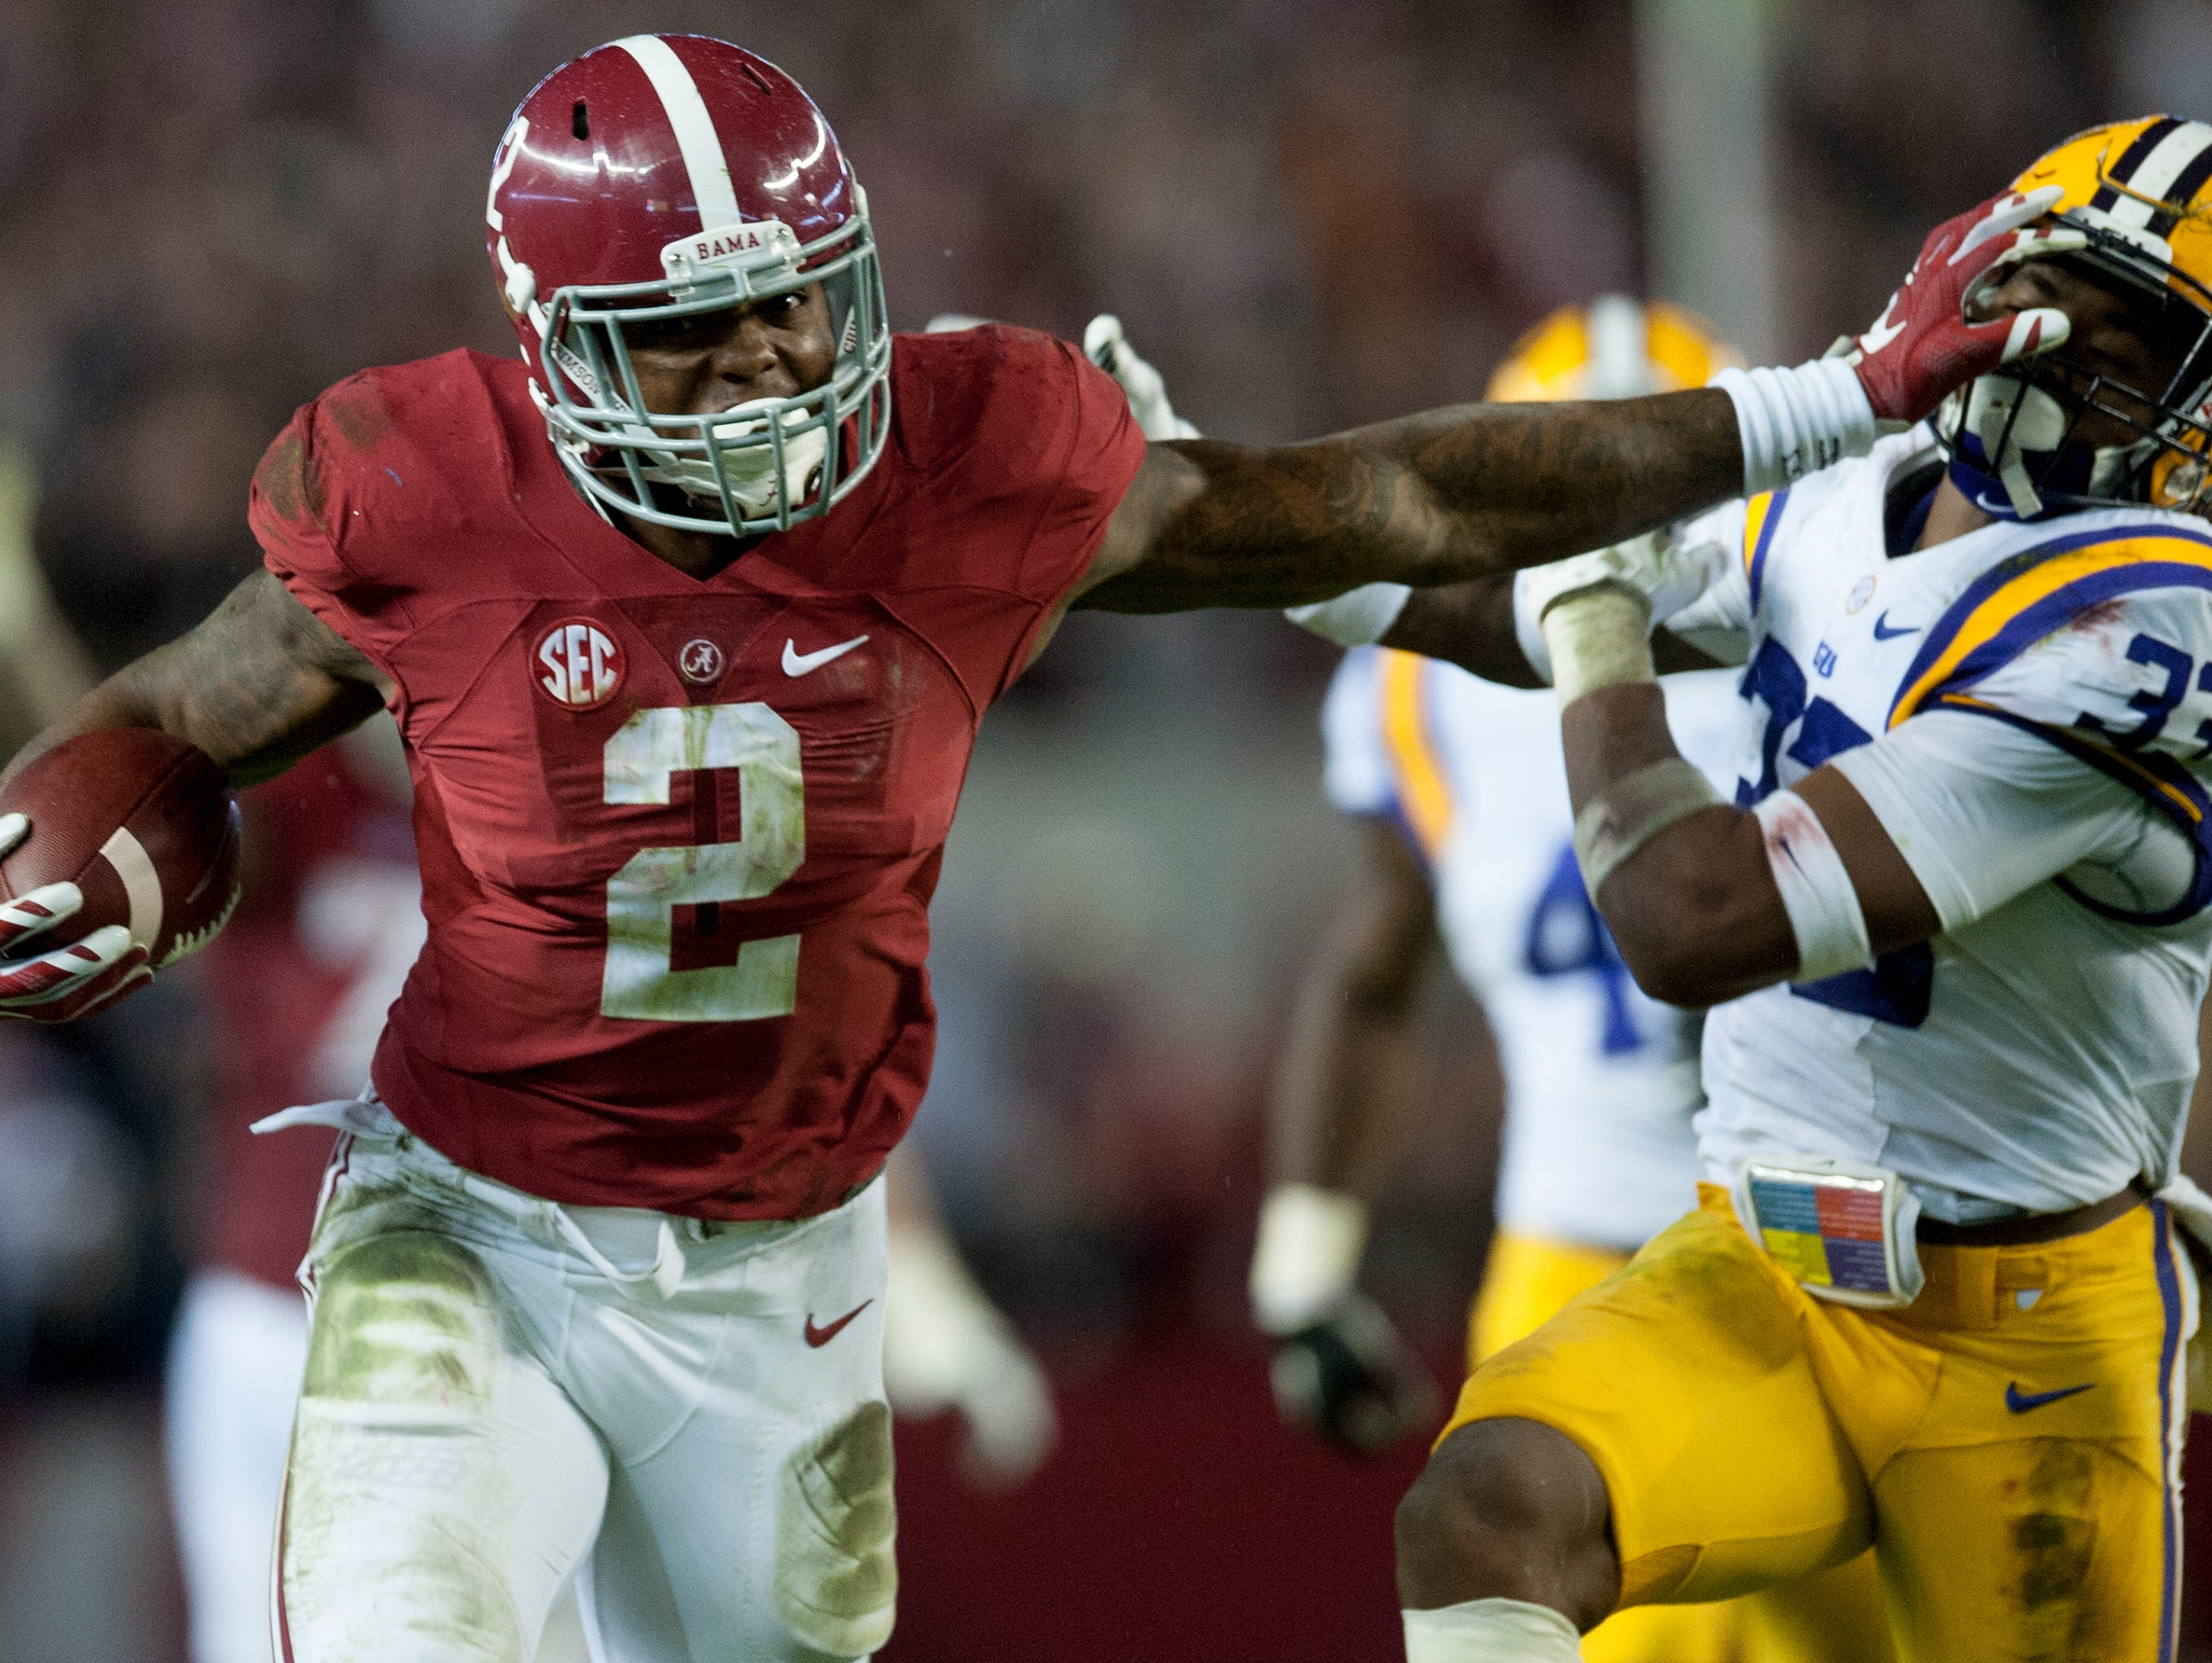 Alabama running back Derrick Henry (2) stiff arms LSU safety Jamal Adams (33) on a long gainer in the second quarter at Bryant-Denny Stadium in Tuscaloosa, Ala. on Saturday November 7, 2015